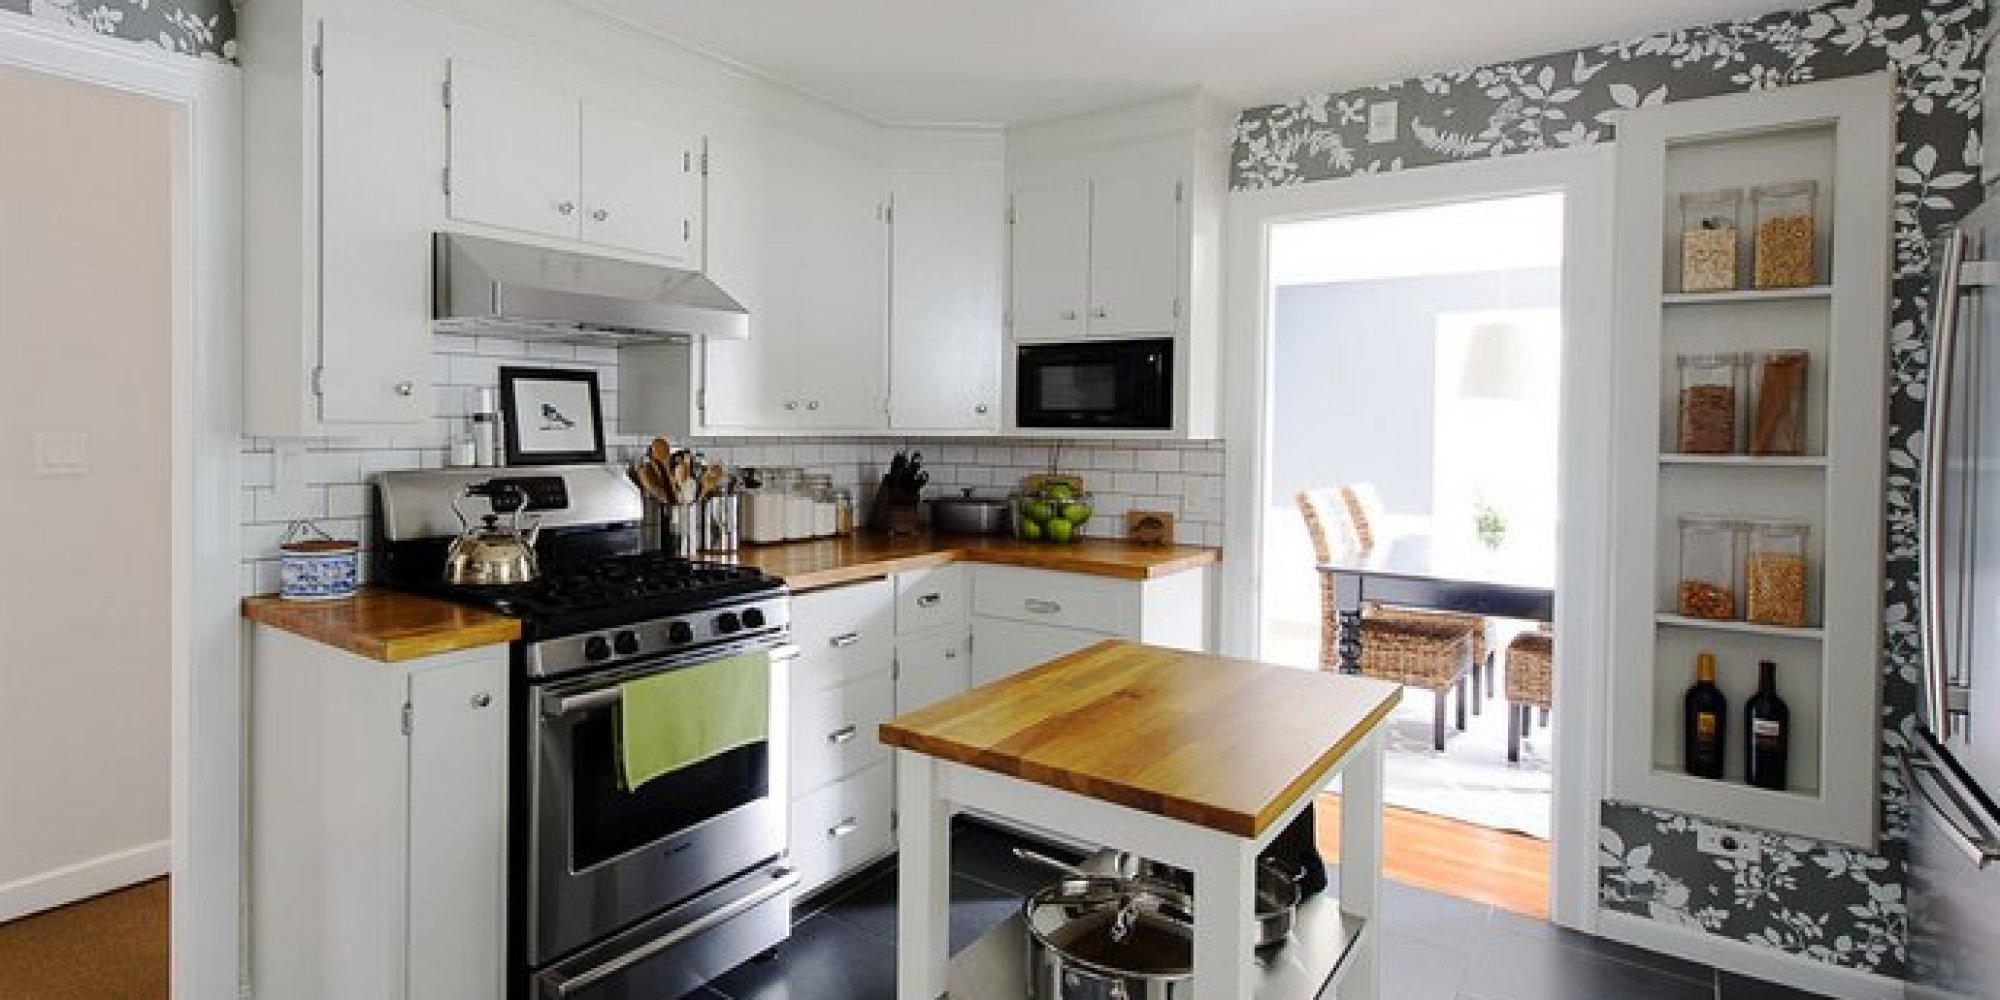 19 inexpensive ways to fix up your kitchen photos huffpost for Simple and cheap kitchen design